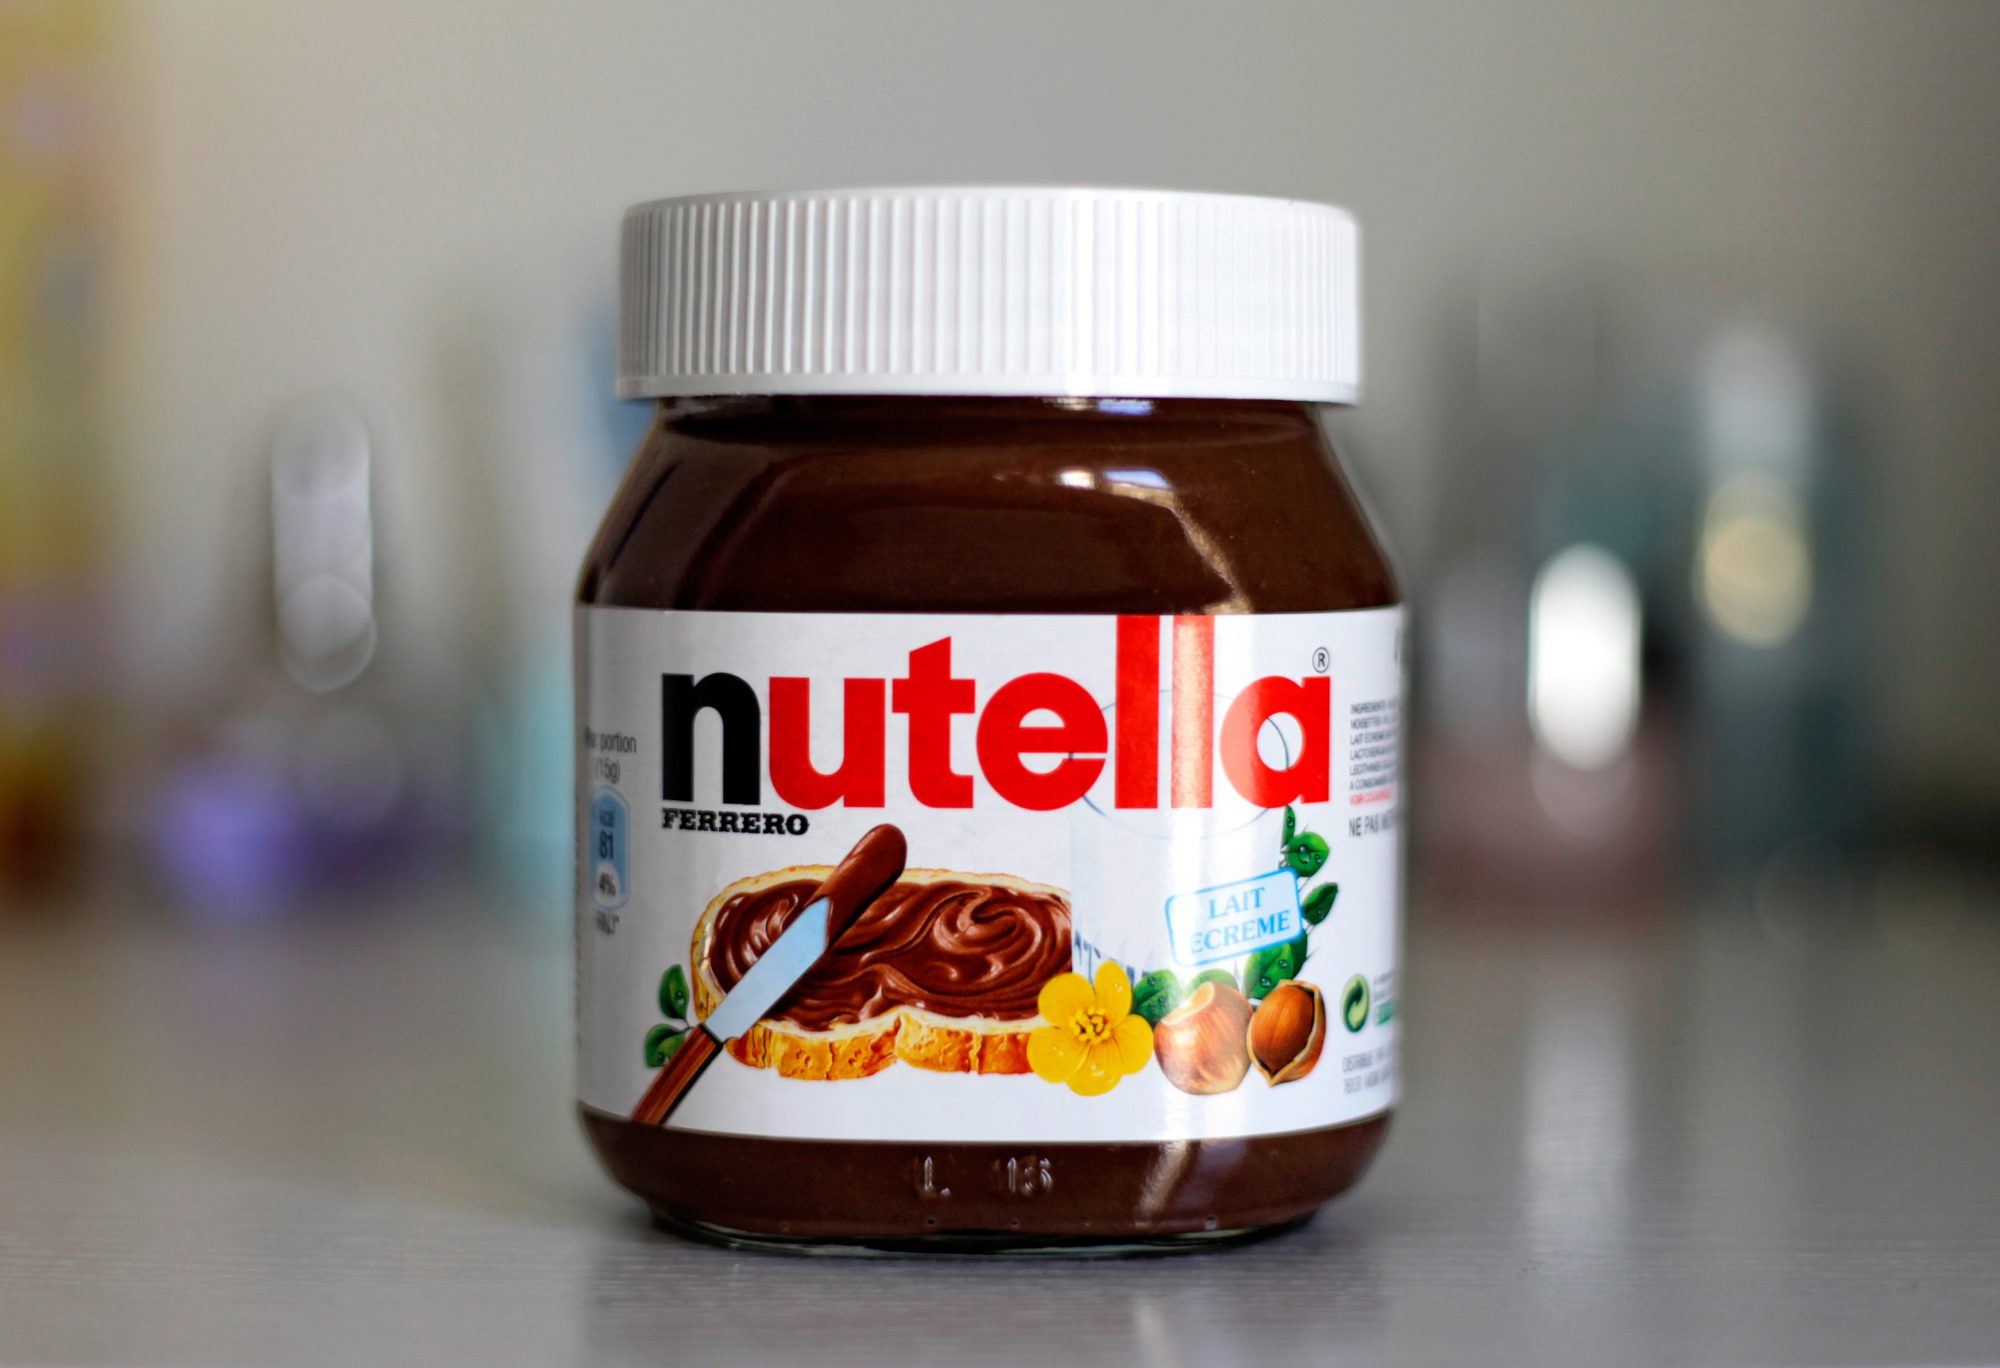 nutella-jar-chocolate-hazelnut